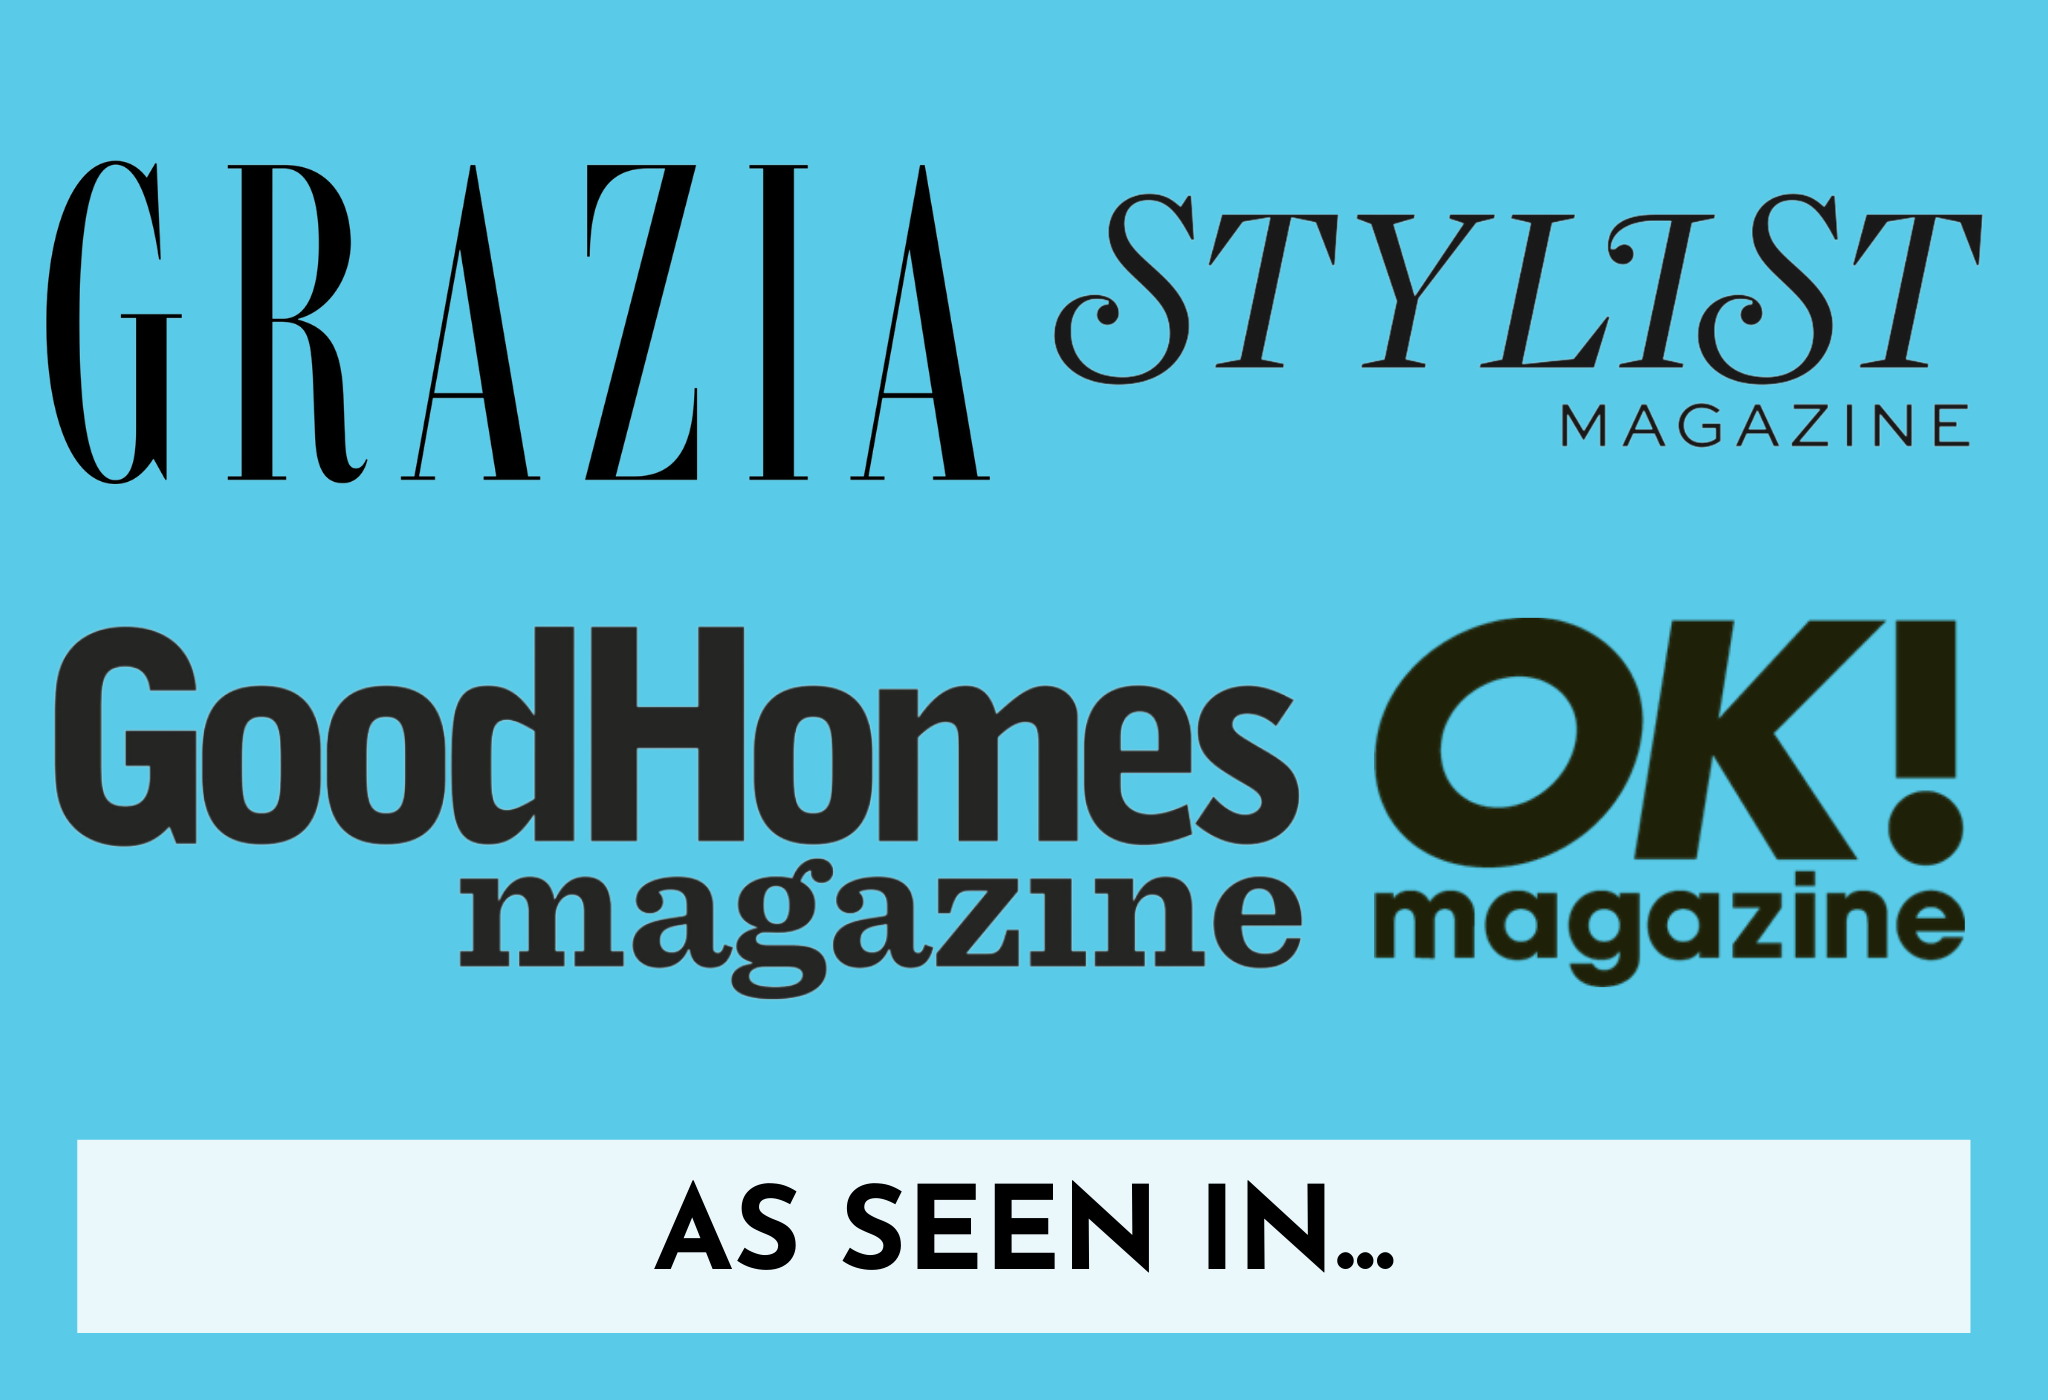 Kin and Castle as seen in press page link, featuring GRAZIA, Stylist Magazine, Good Homes Magazine and OK! magazine logos